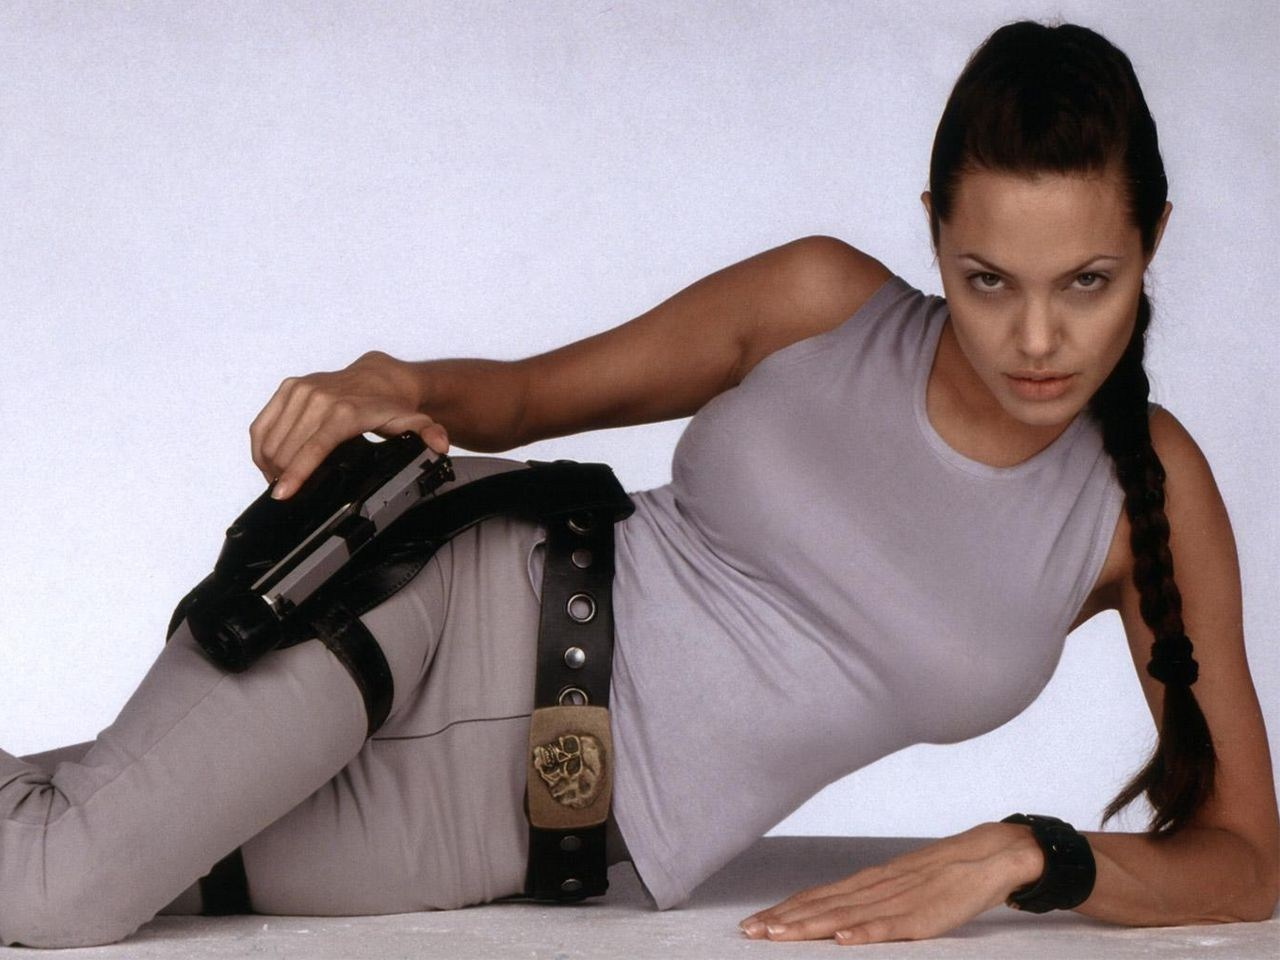 Angelina Jolie's Sexiest Images